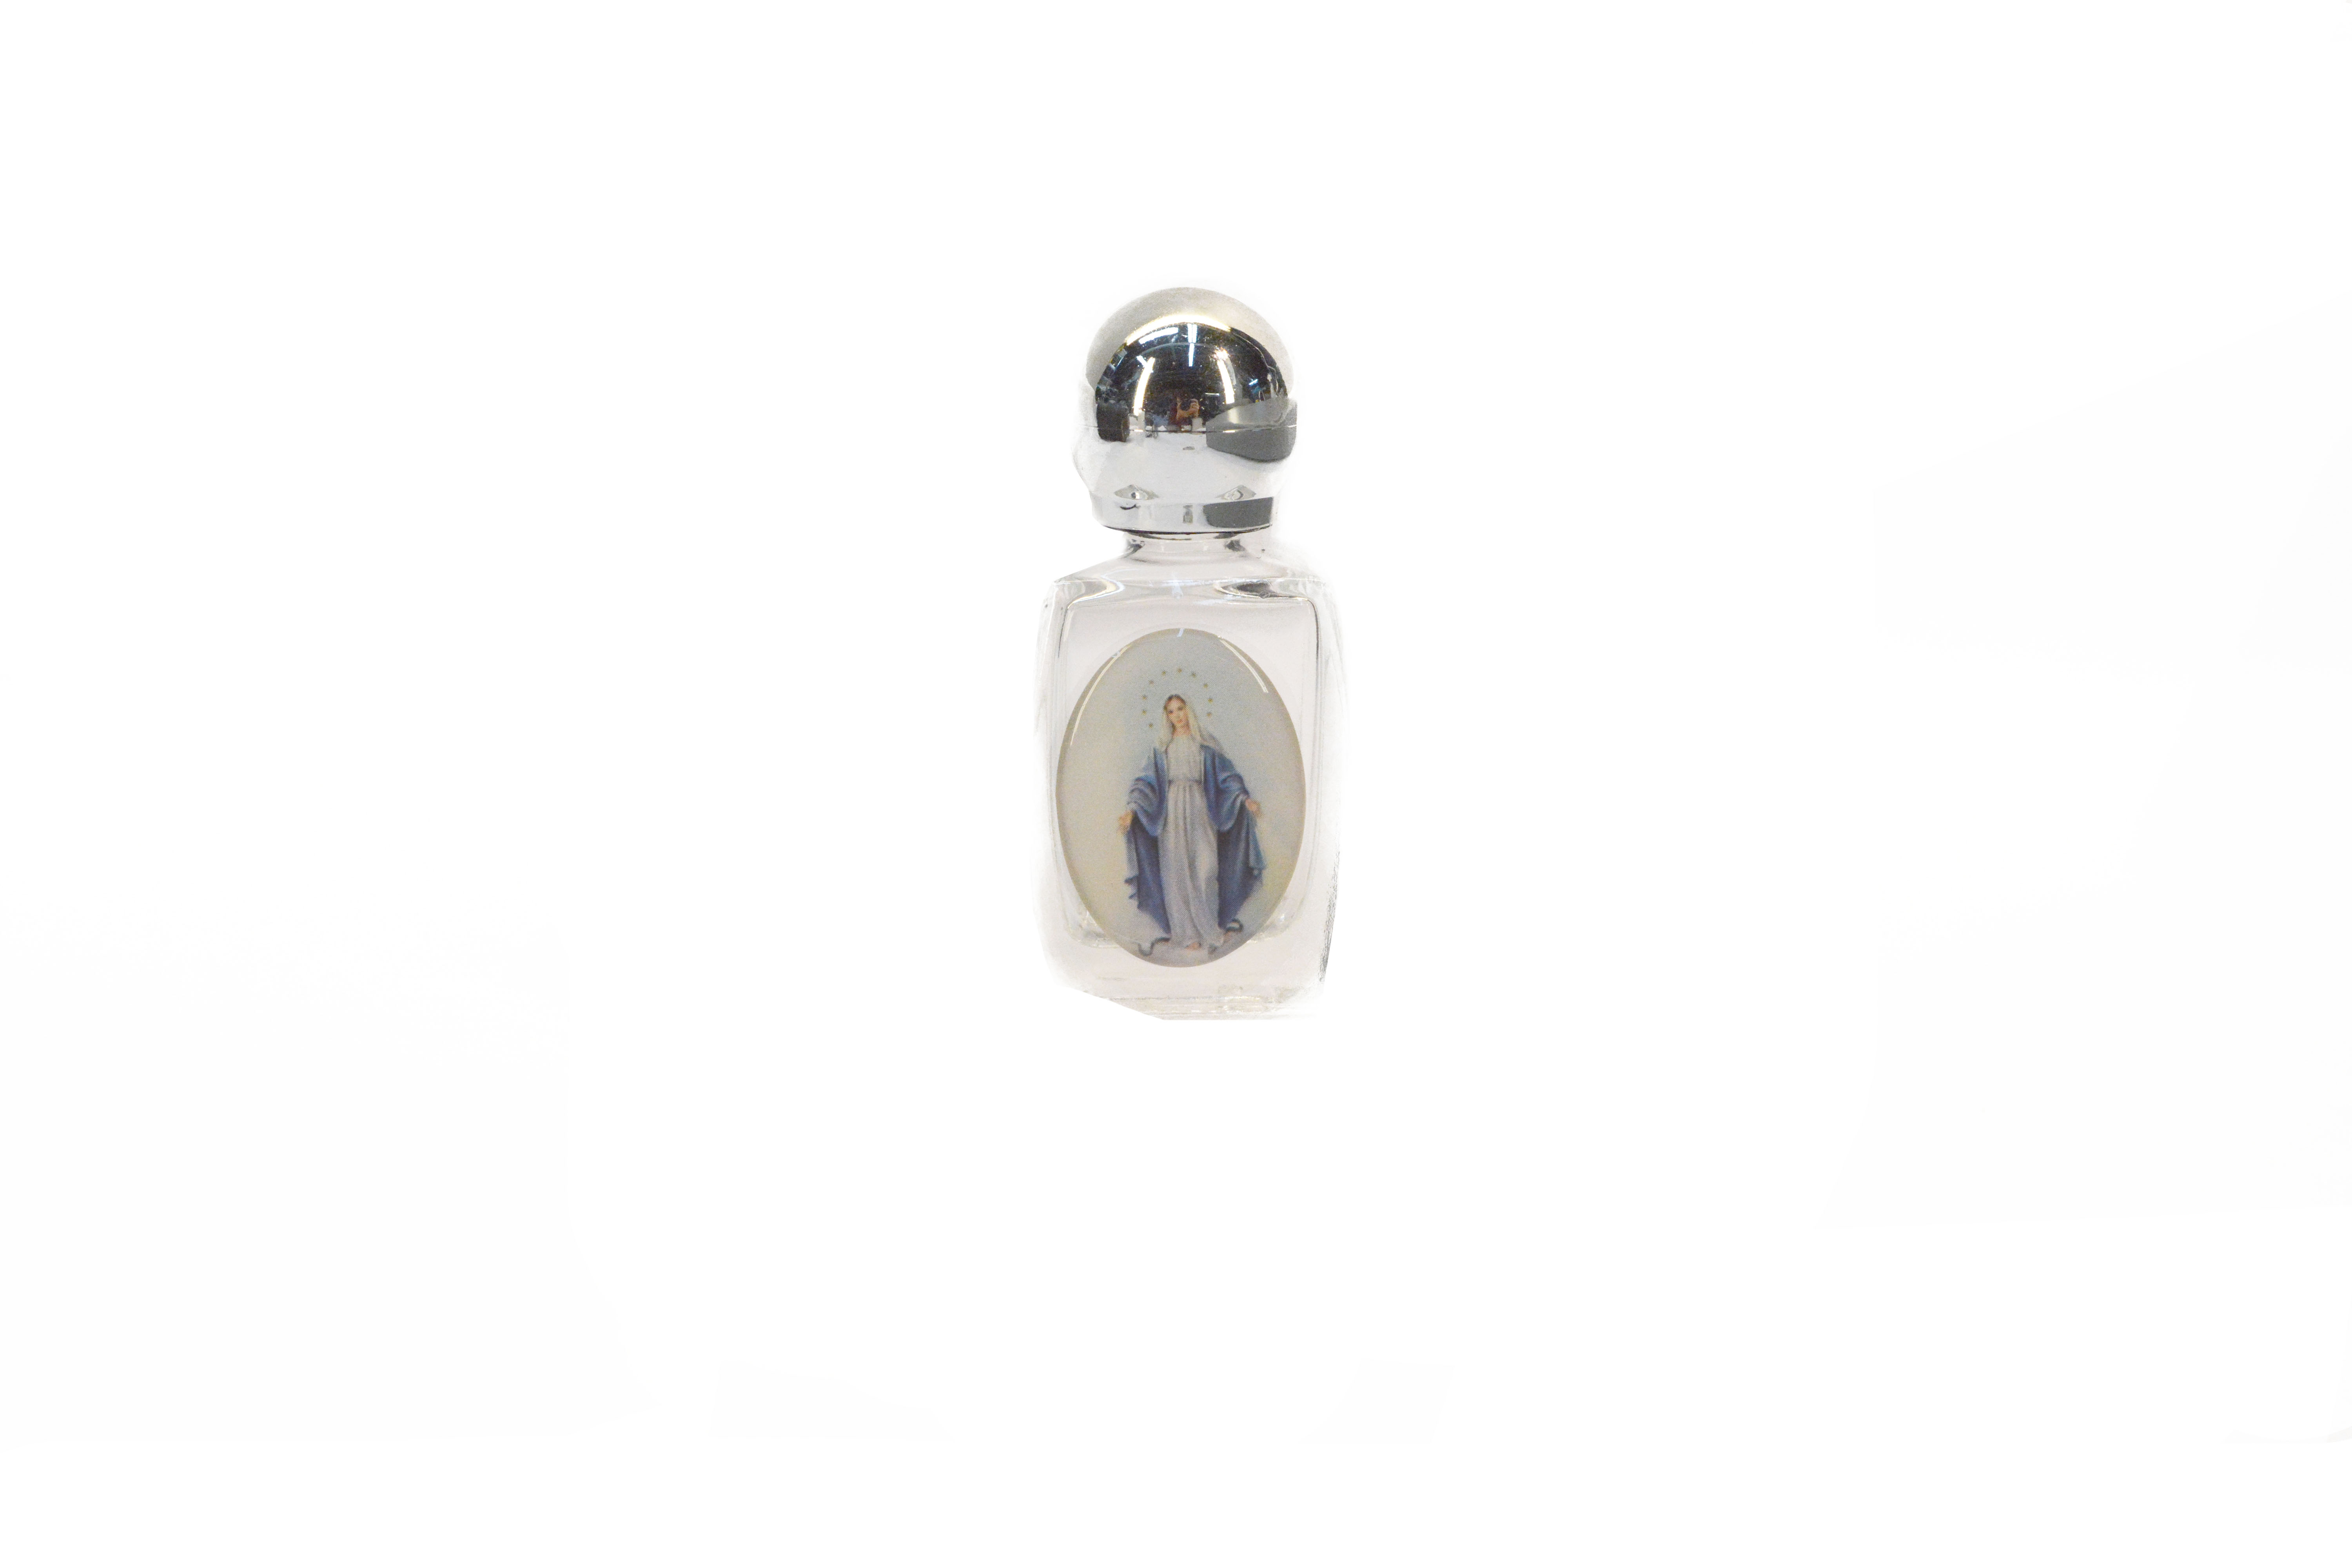 bouteille pour eau bénite / Bottle for Holy Water